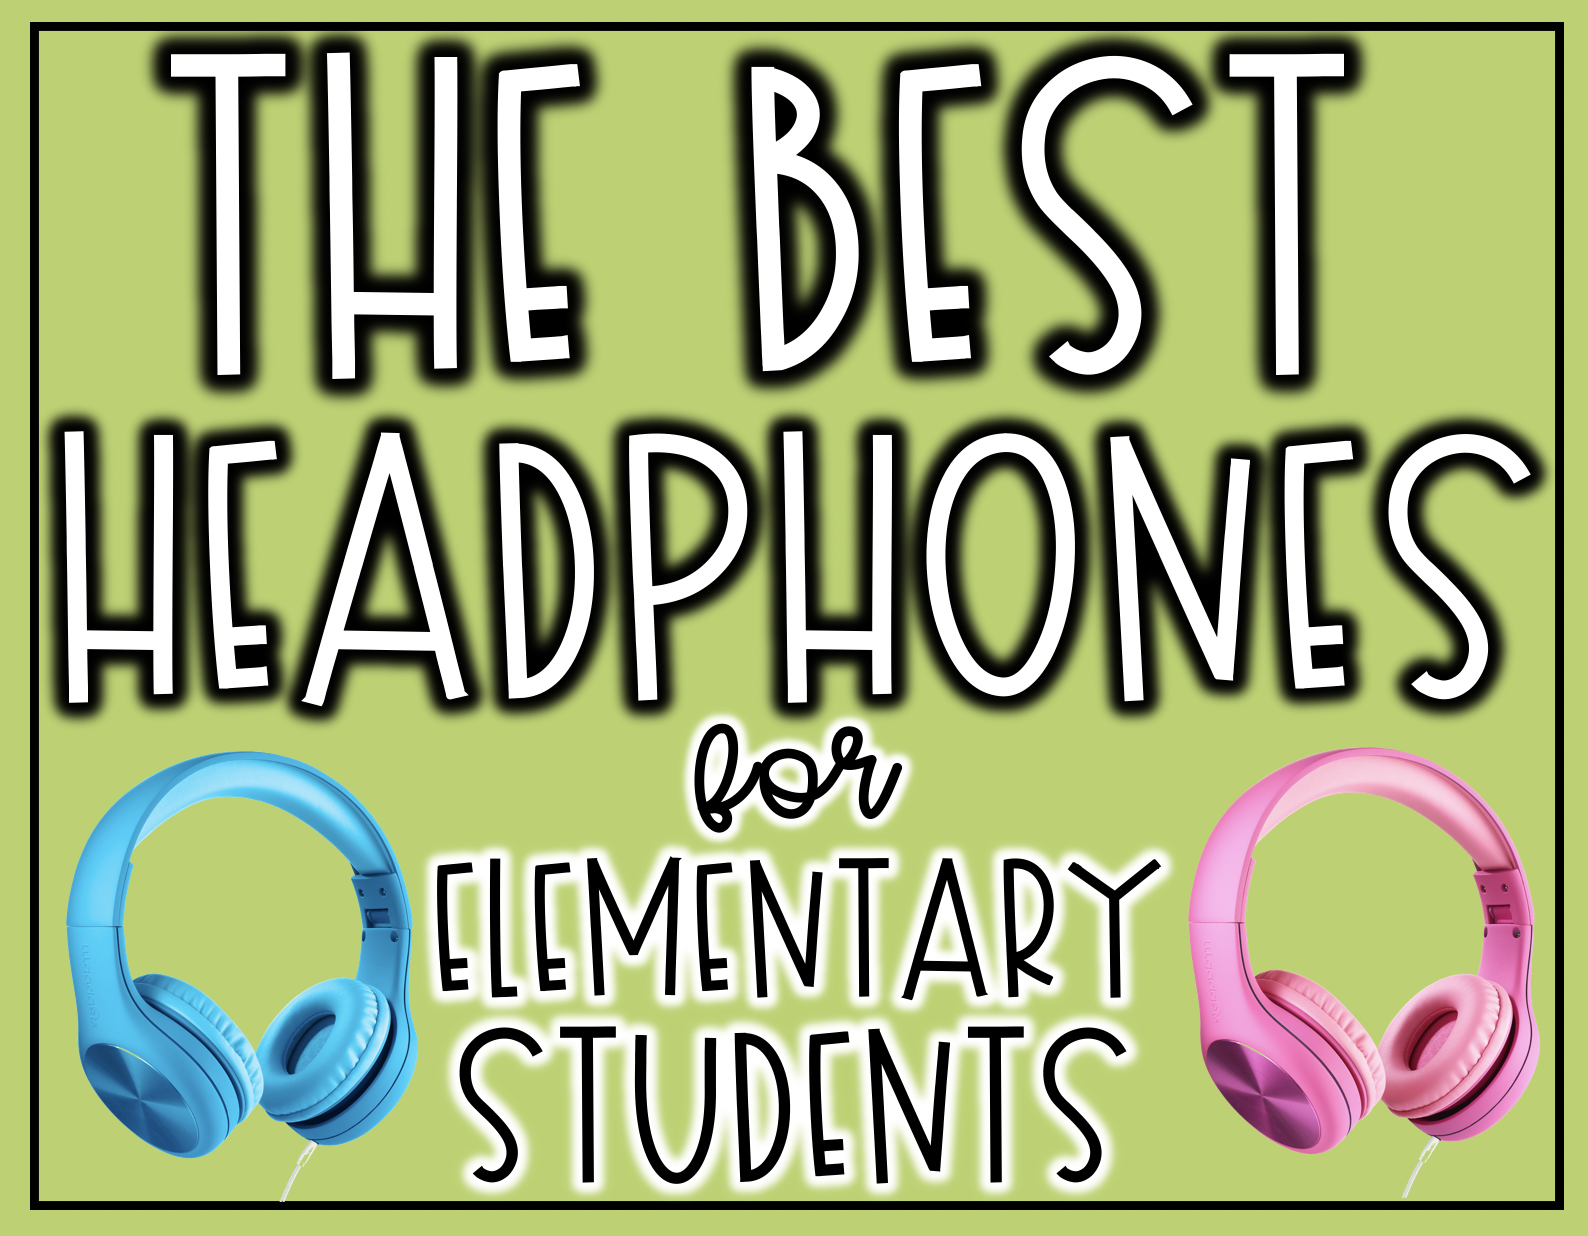 The Best Headphones for Elementary Students and Kids